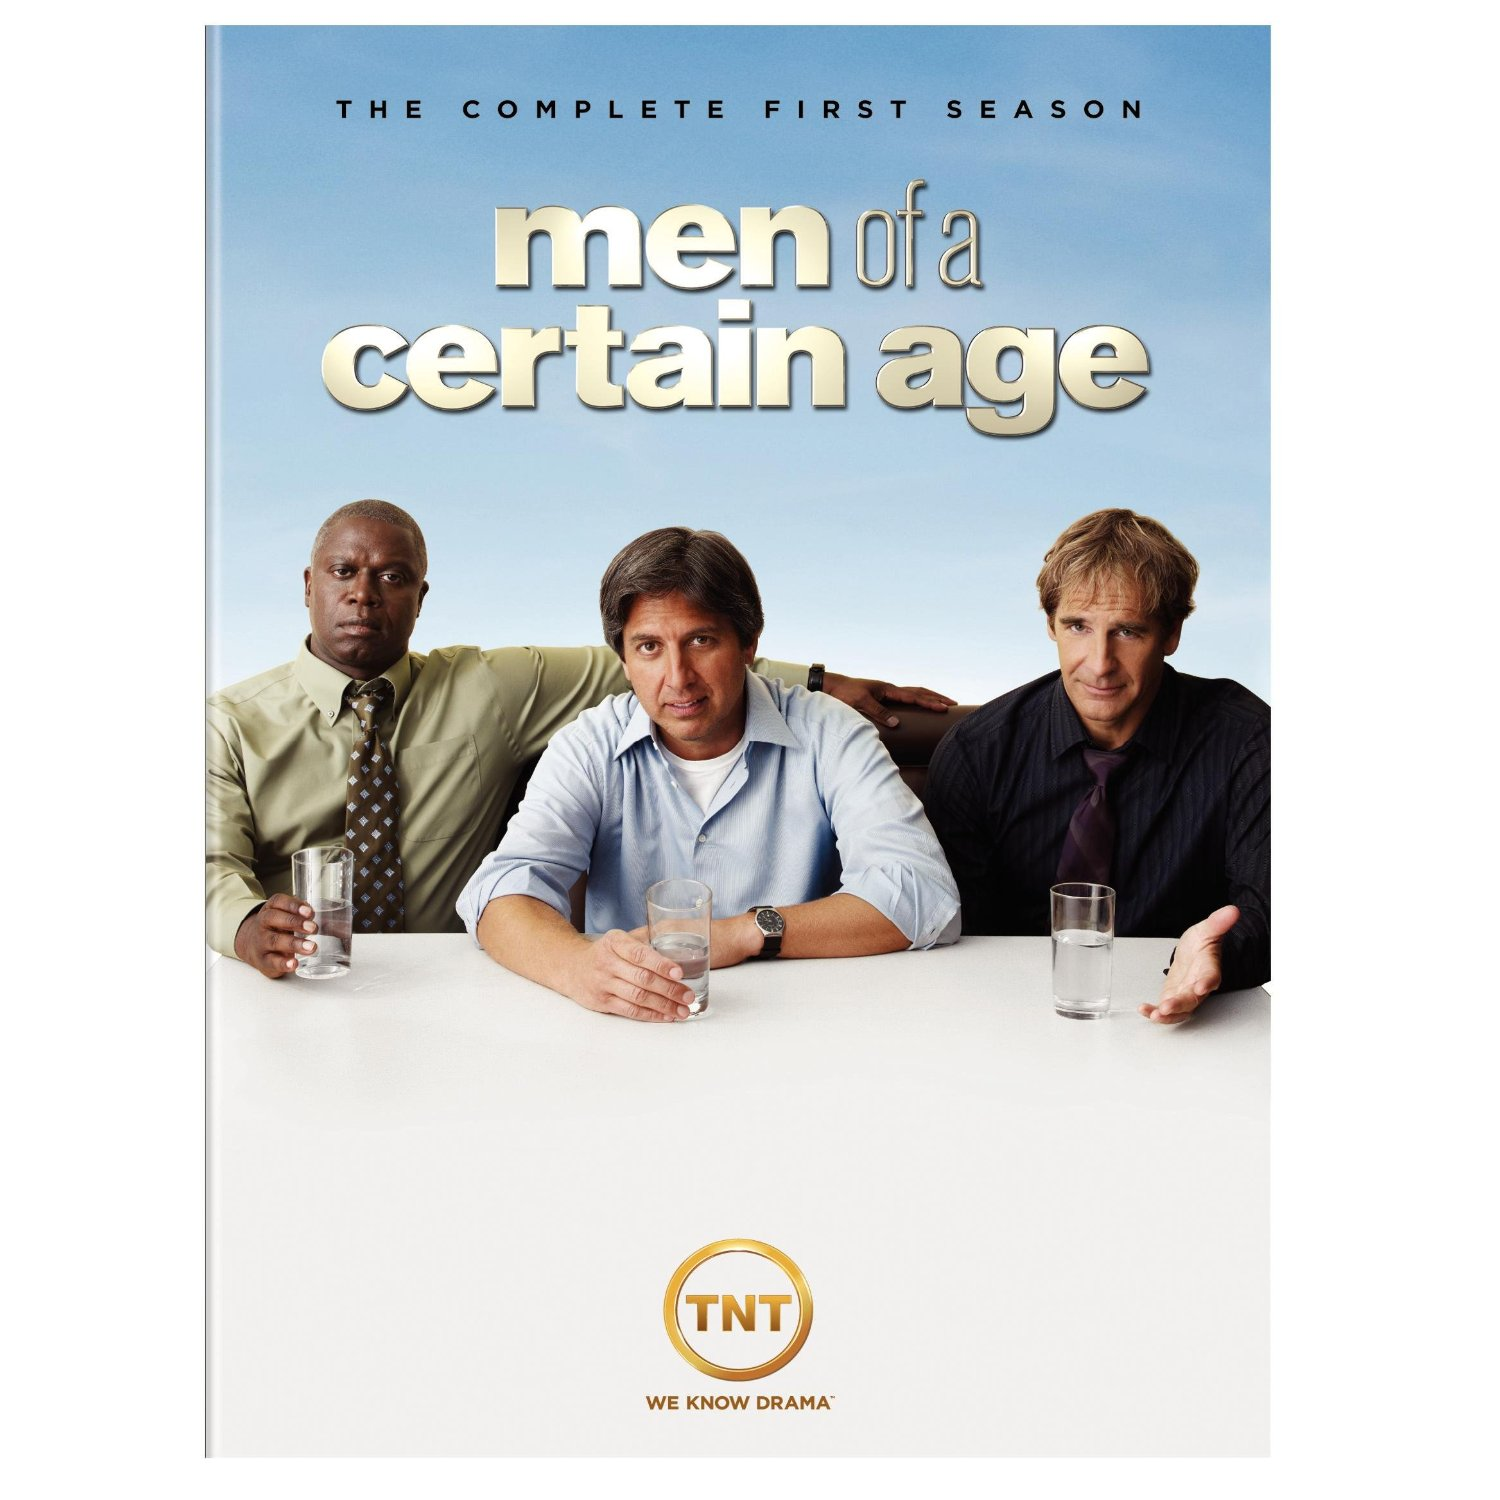 Men of a Certain Age: The Complete First Season Review and Giveaway